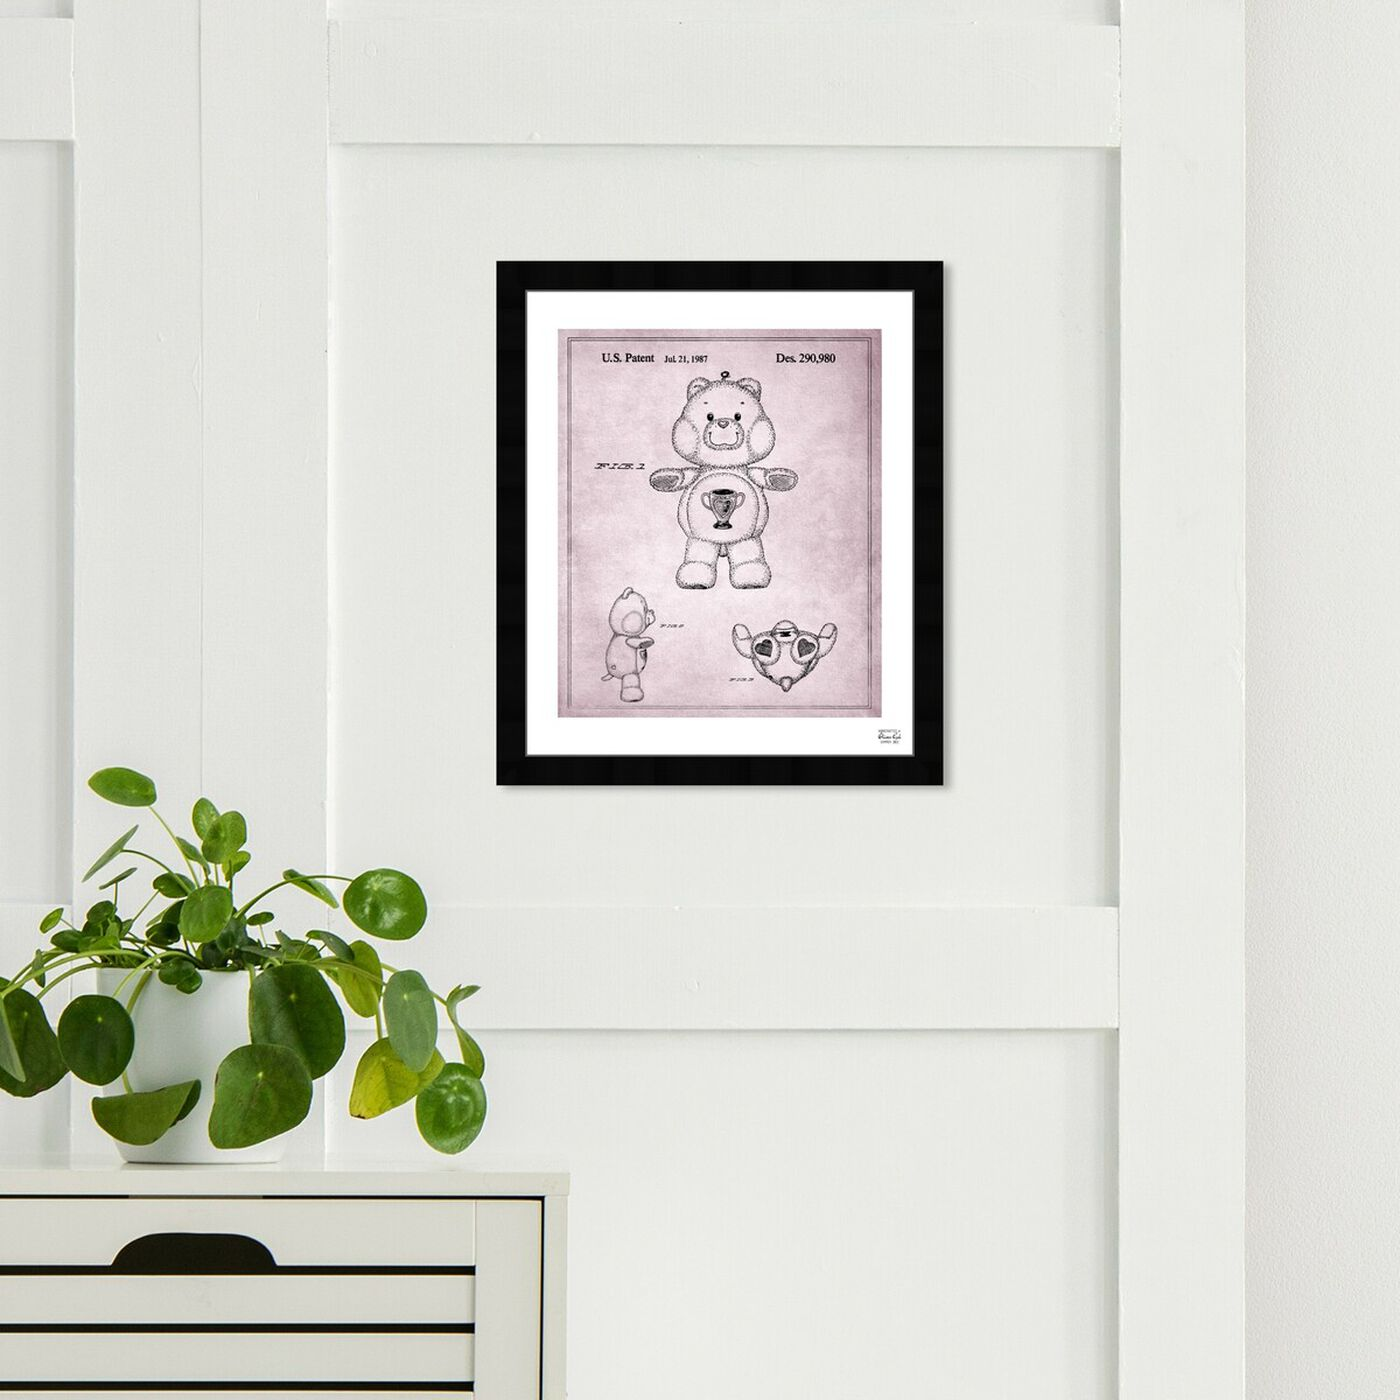 Hanging view of Carebears - Champ Bear 1987 featuring symbols and objects and toys art.